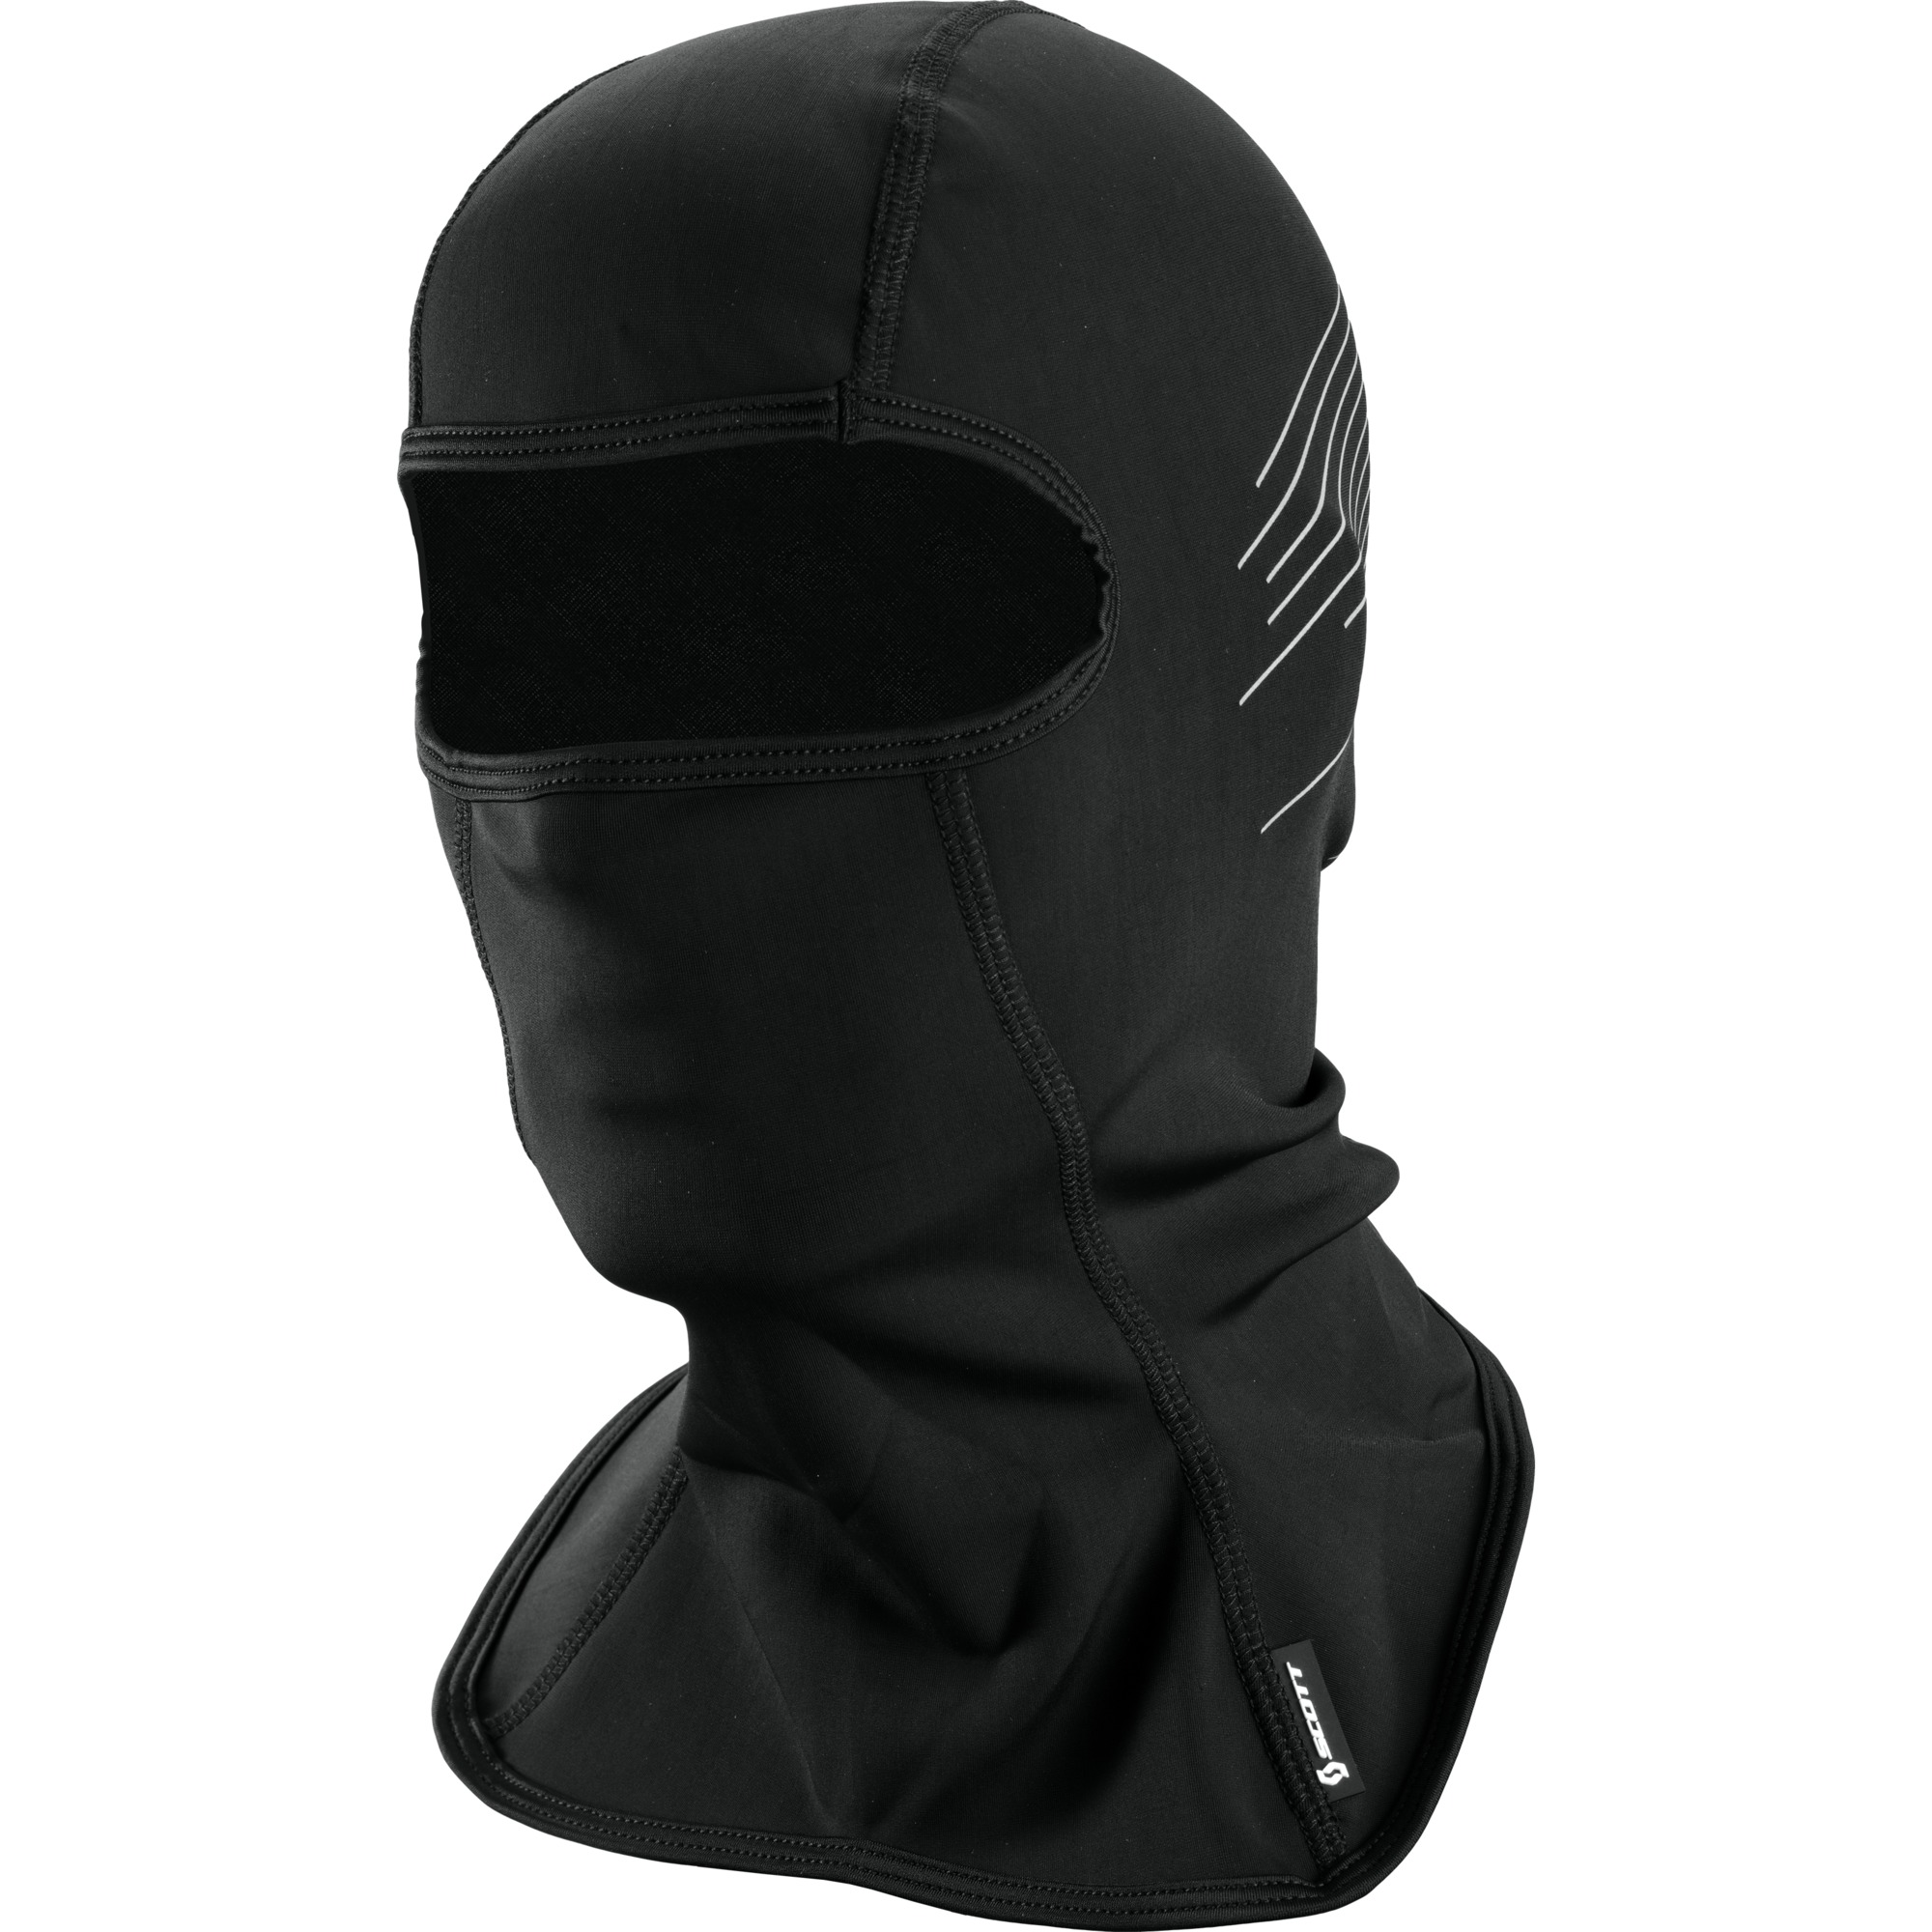 SCOTT AS 20 Balaclava